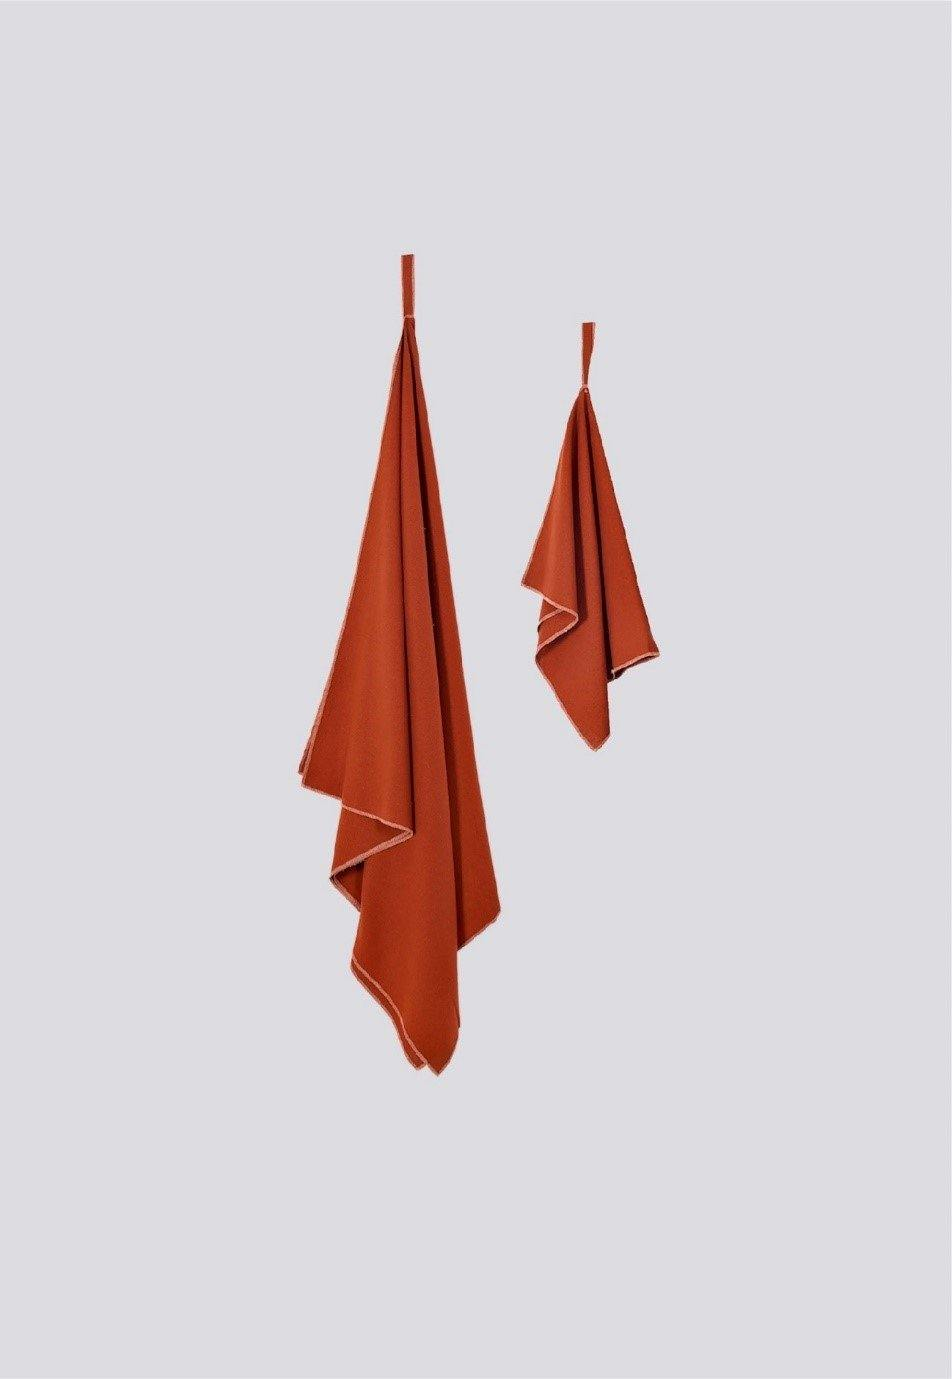 Raw Silk Travel Towel, Bantam Set, Chili - LockrSpace